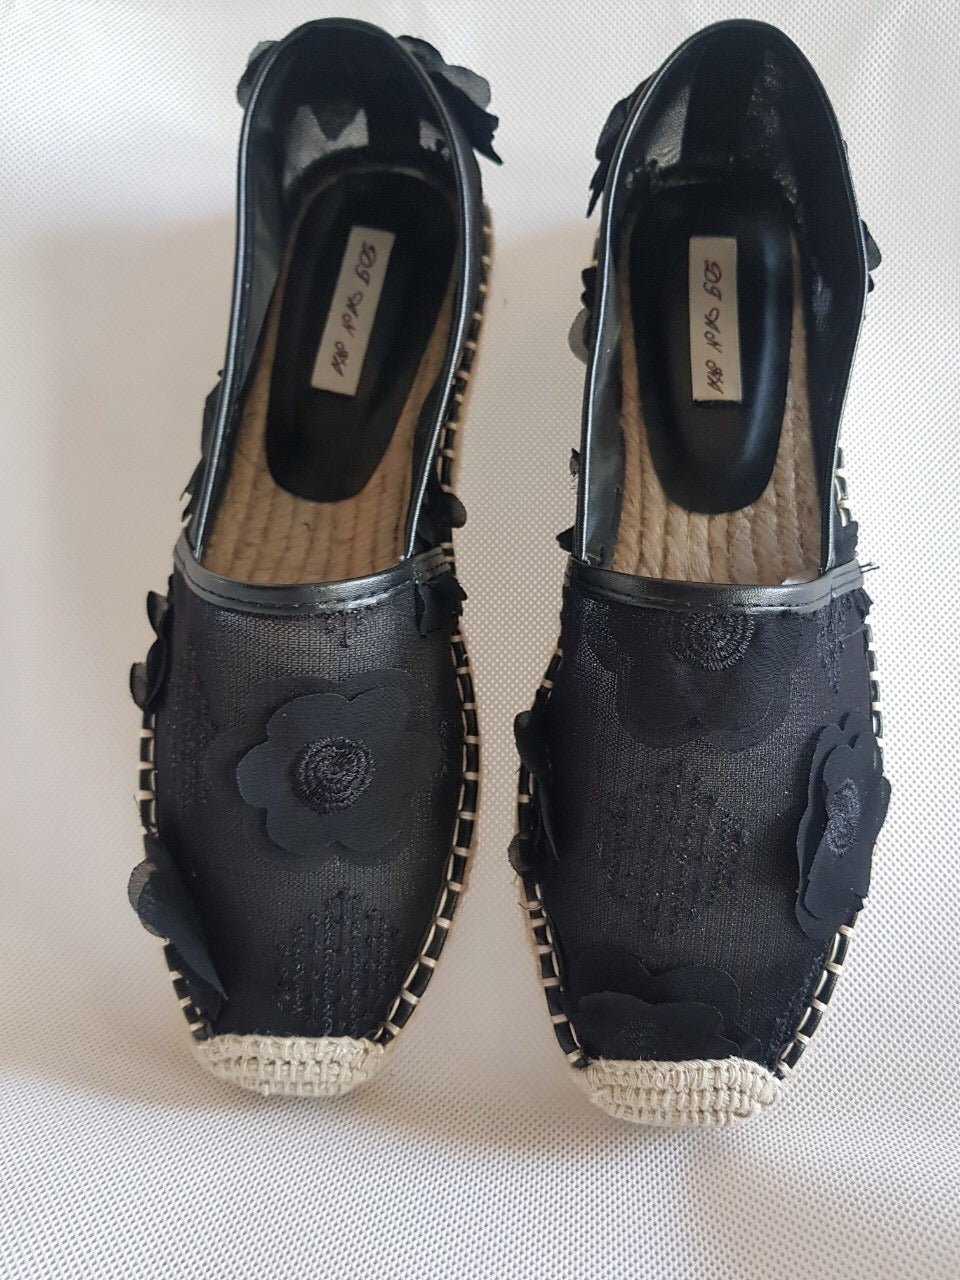 F3B-Black Lace Espadrilles 3D Flower **recommend sizing down one full size**